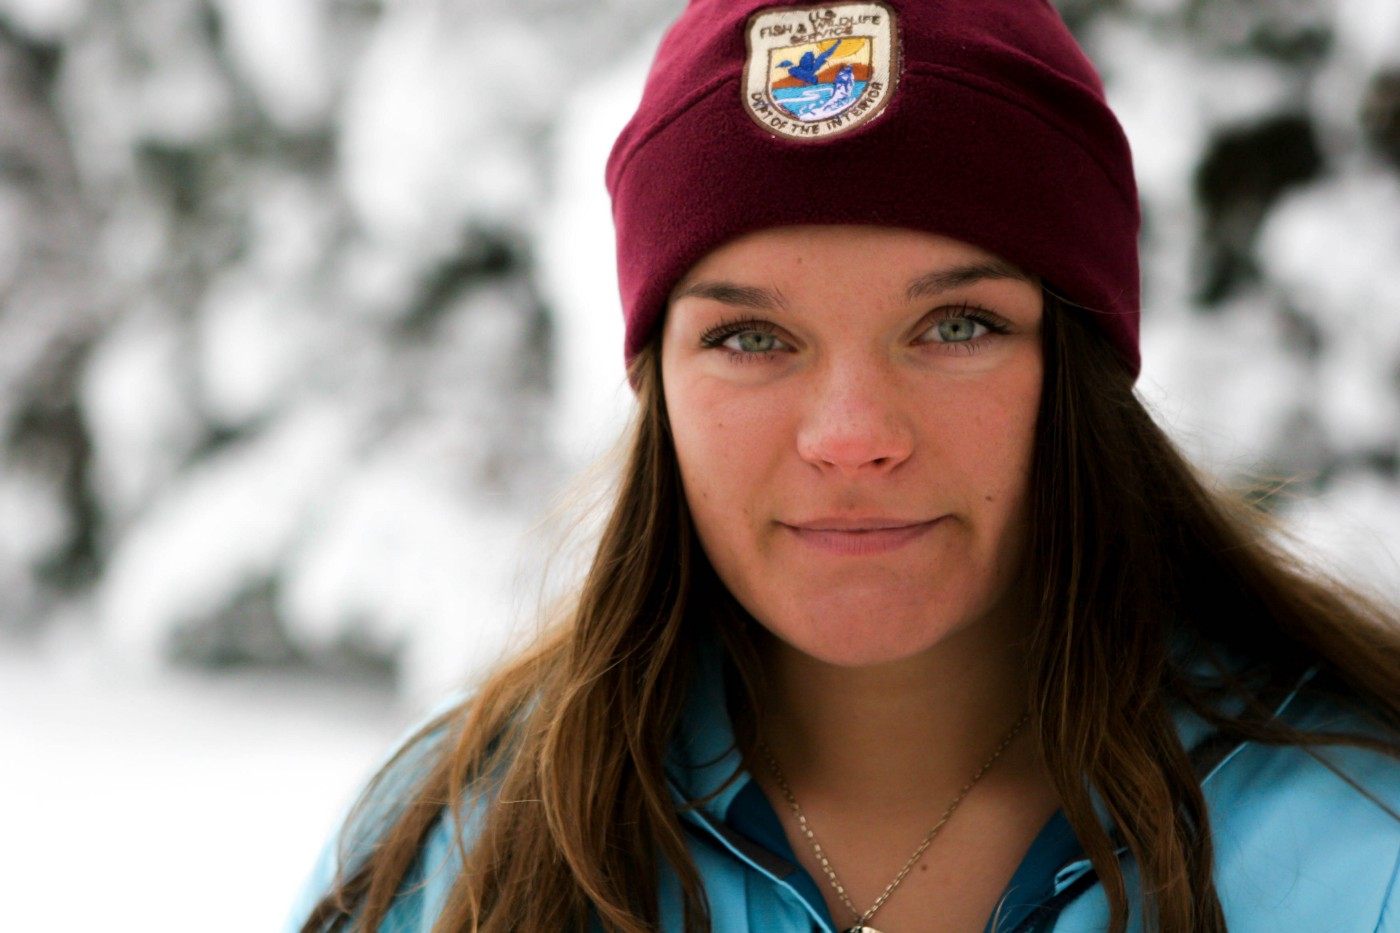 young woman in a snowy environment wearing a USFWS hat